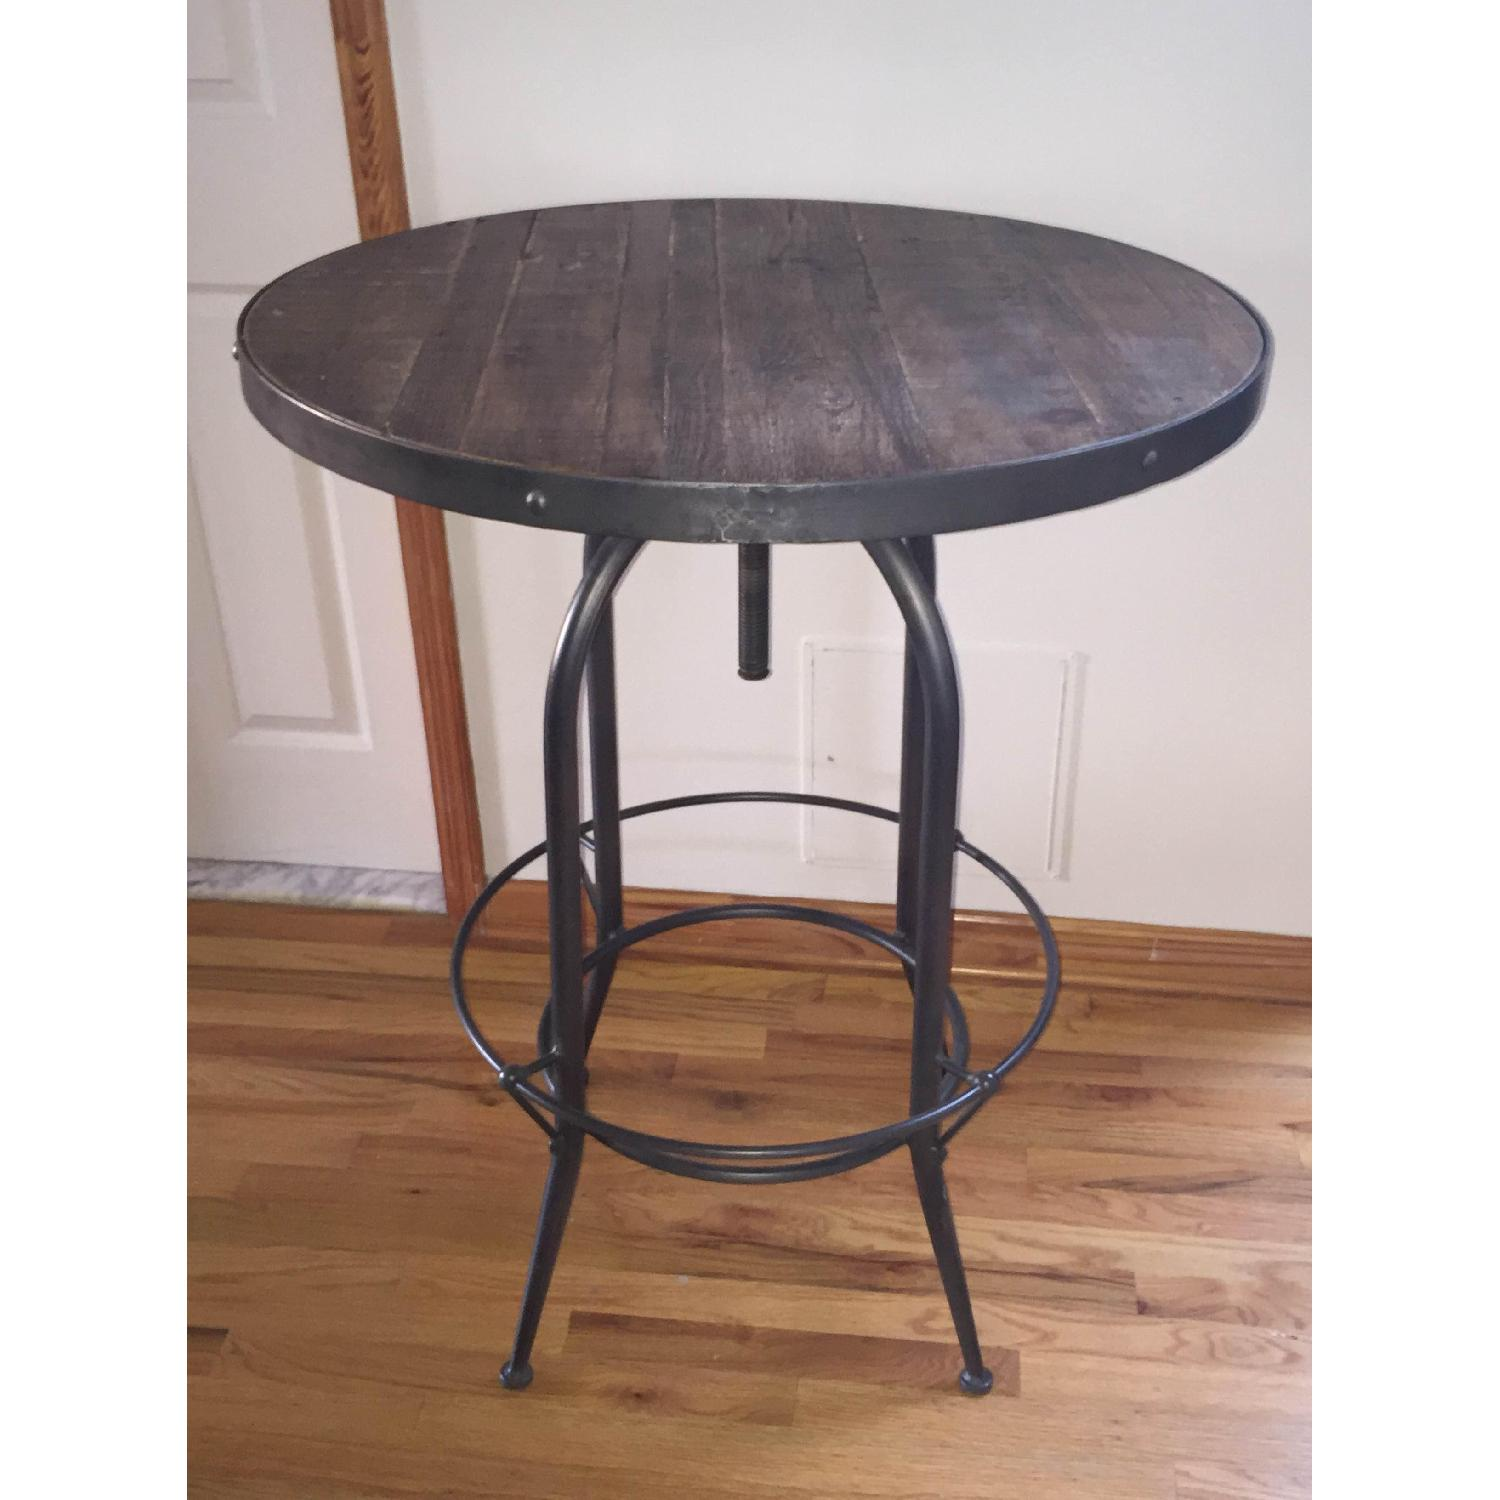 West Elm Table w/ 2 Chairs - image-2